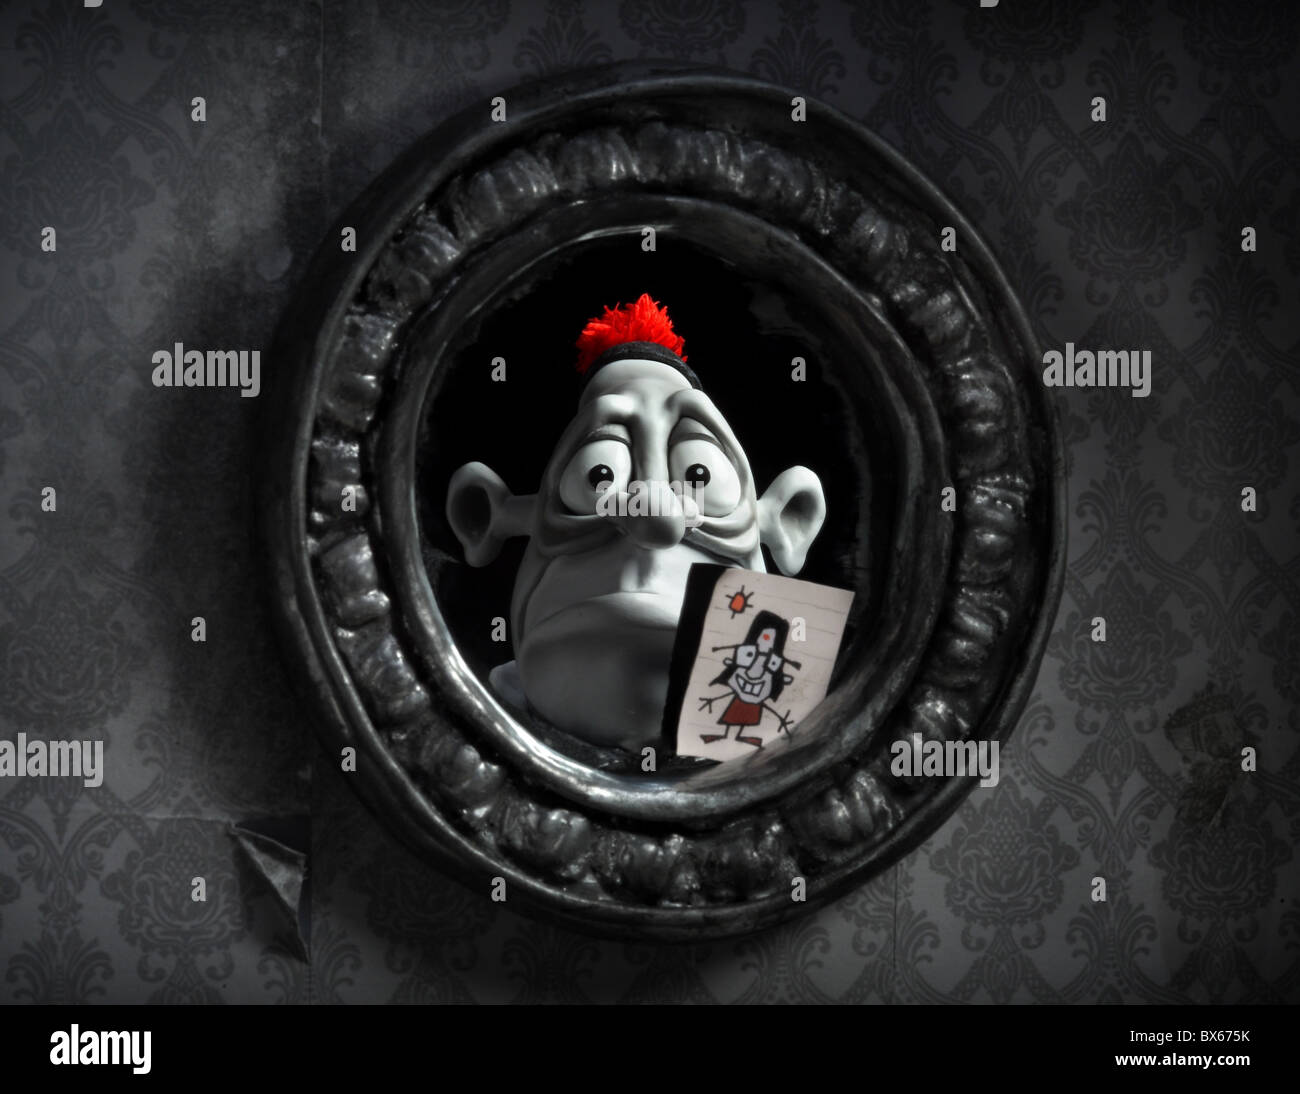 Max Mary And Max 2009 Stock Photo Alamy